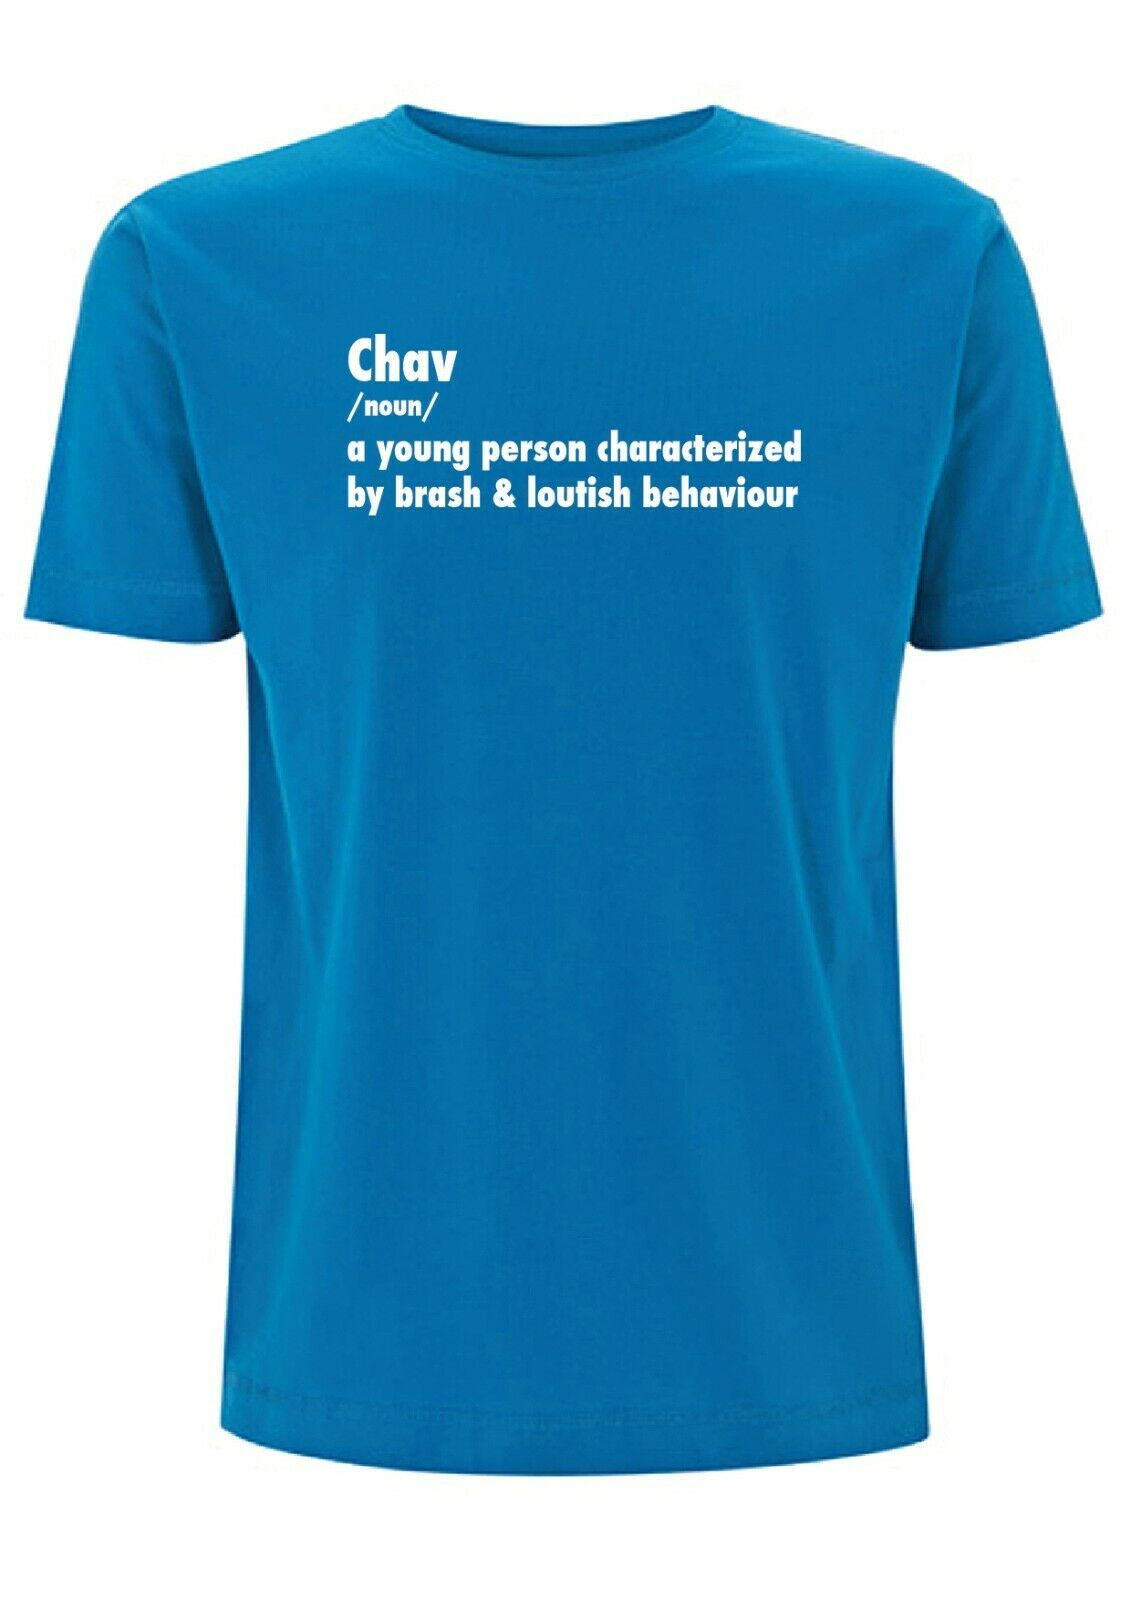 Chav Meaning T Shirt Mens Top Chavy Brash Loud Bad Boy common Urban Dictionary 2020 High quality Brand T shirt Casual Short slee image